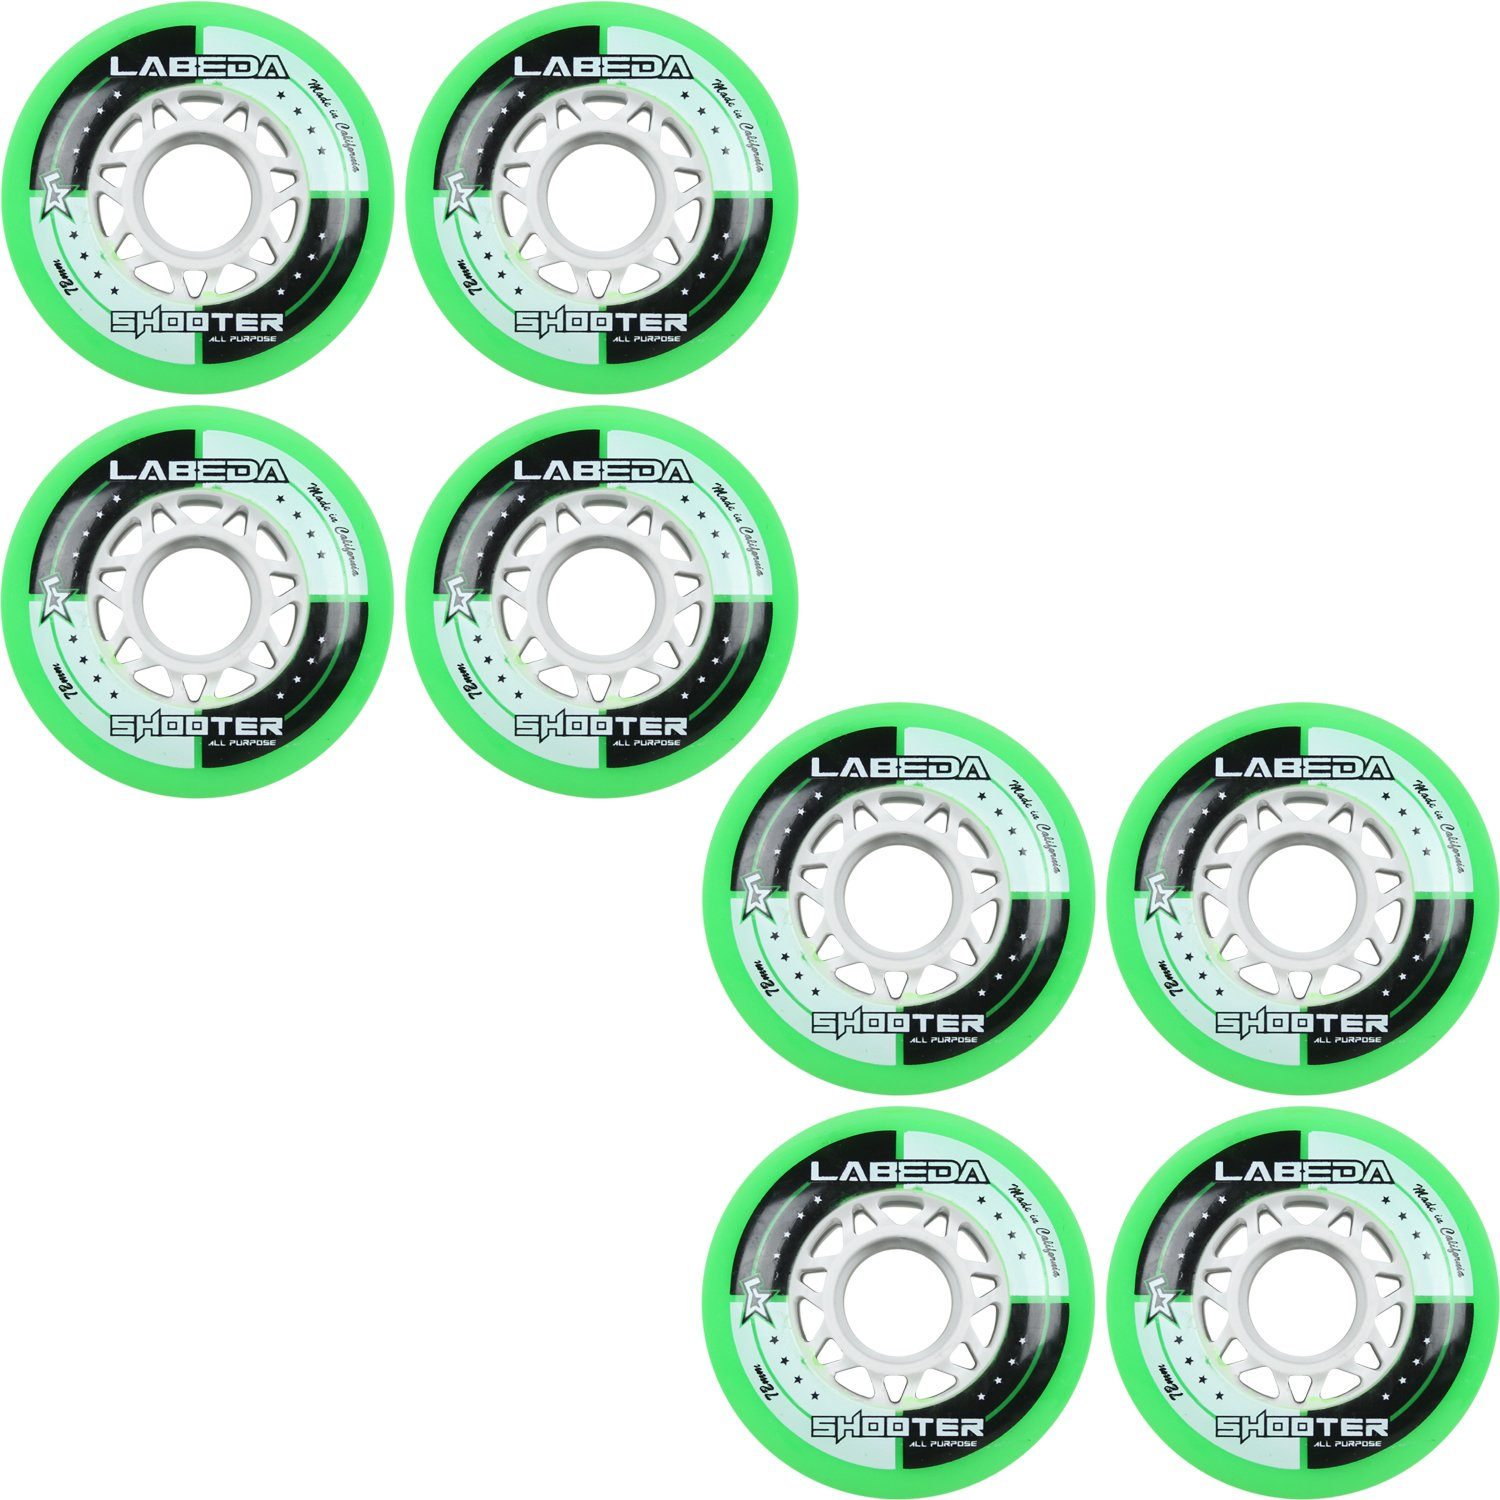 LABEDA WHEELS Inline Roller Hockey SHOOTER 8 Pack (72mm) by Labeda